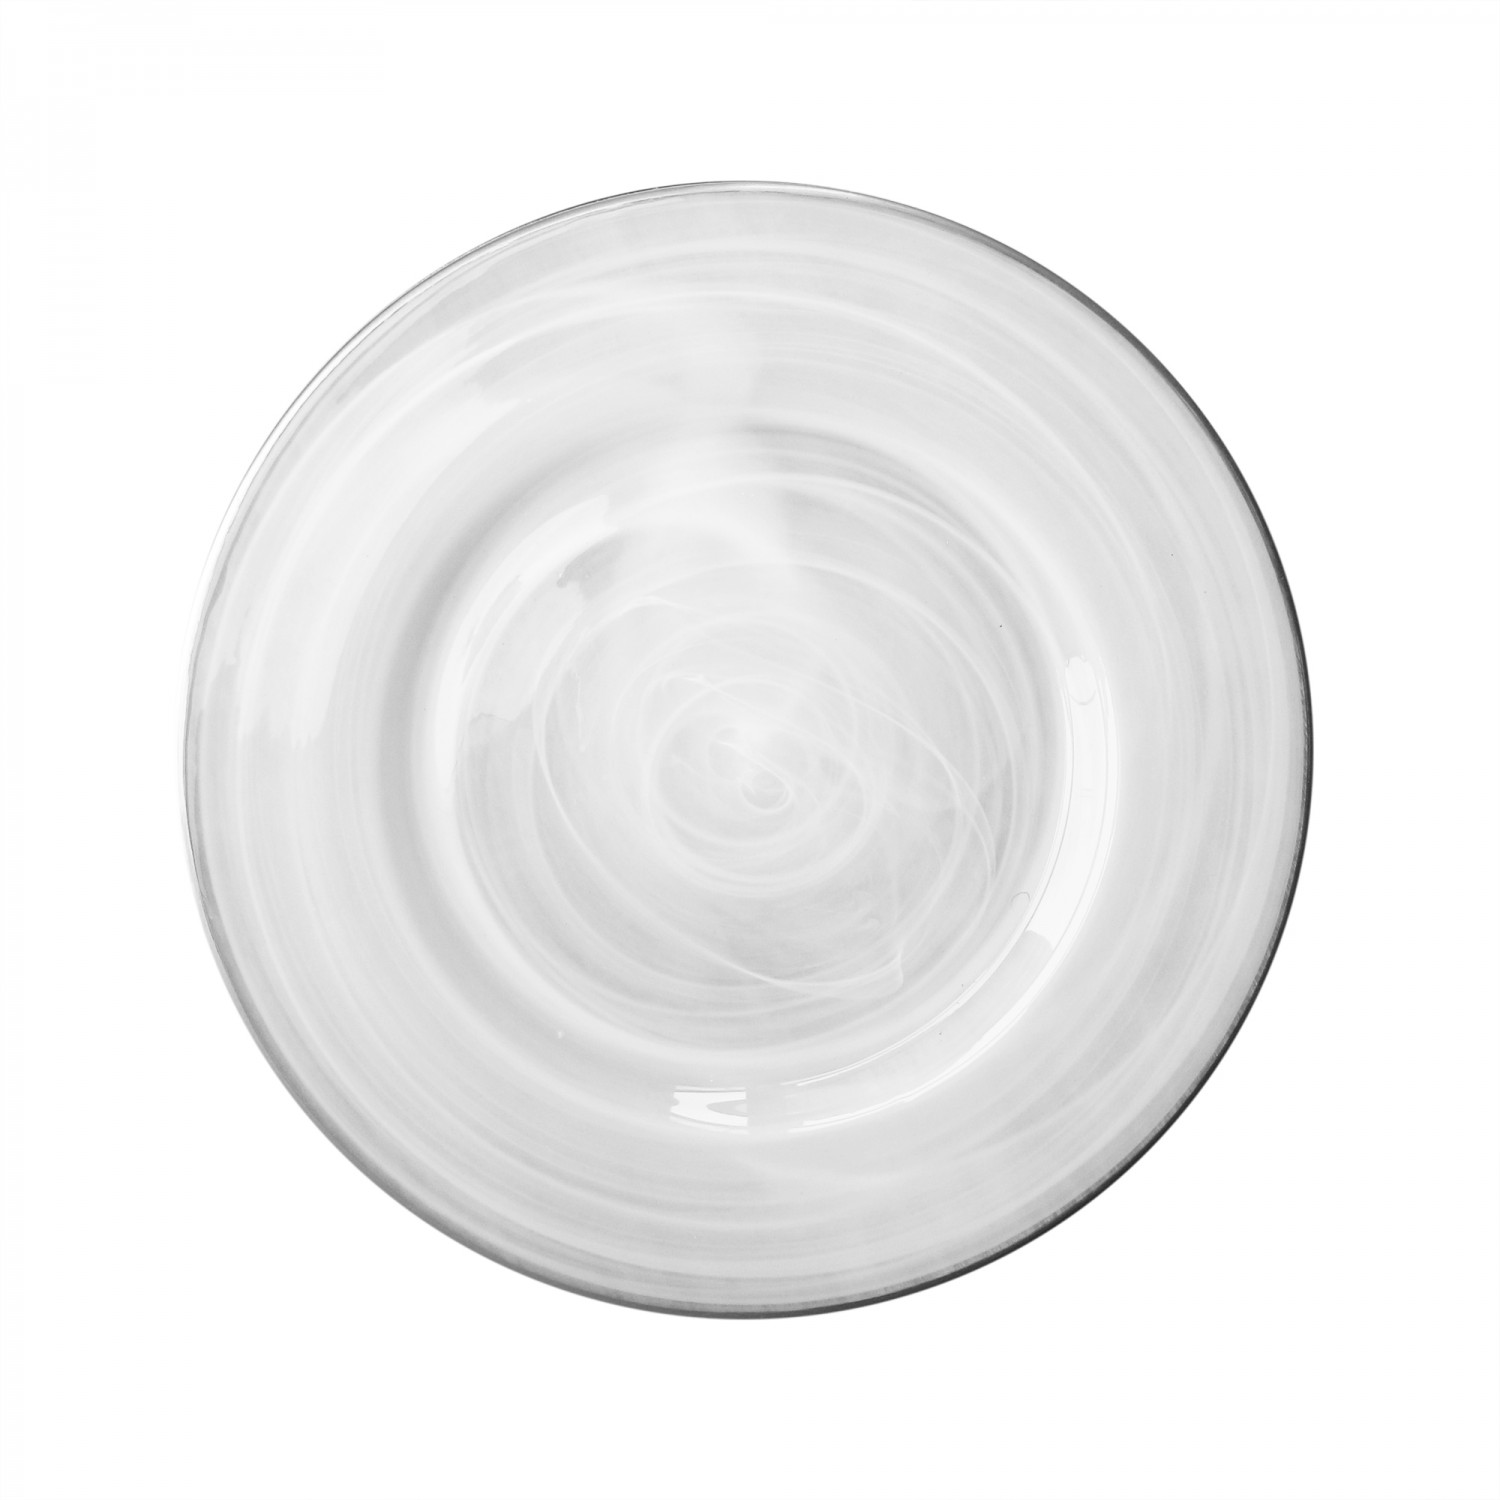 The Jay Companies 1470354 Round Alabaster Silver Rim Glass Charger Plate 13""